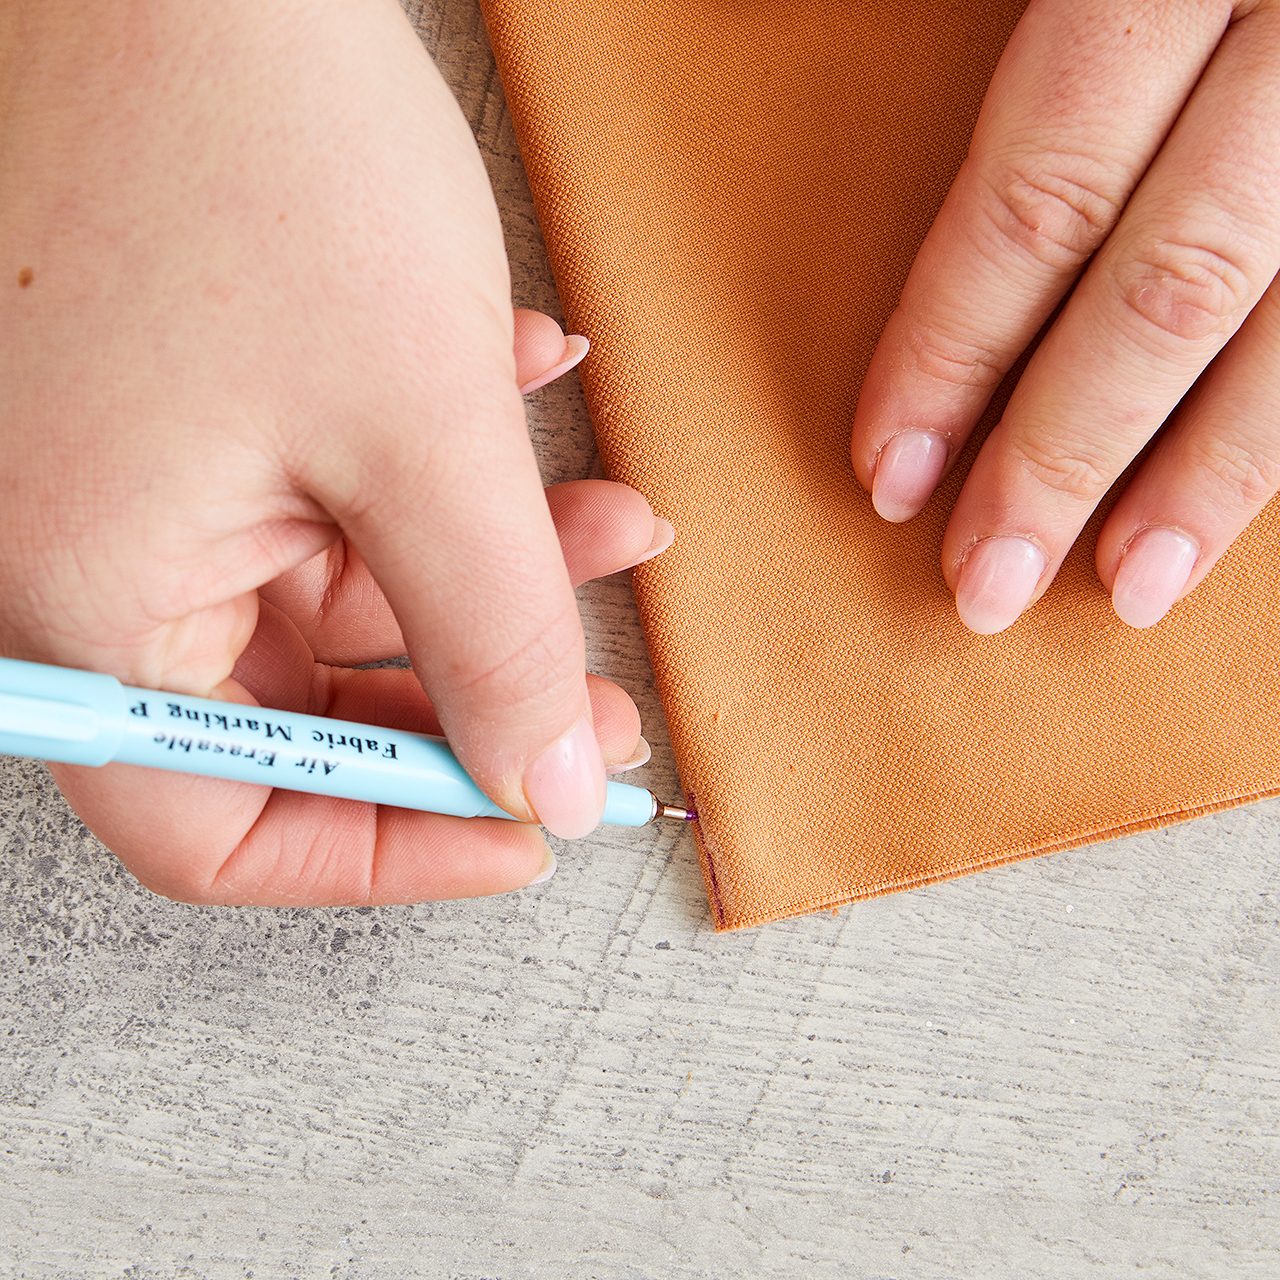 use pen to mark center fold in fabric